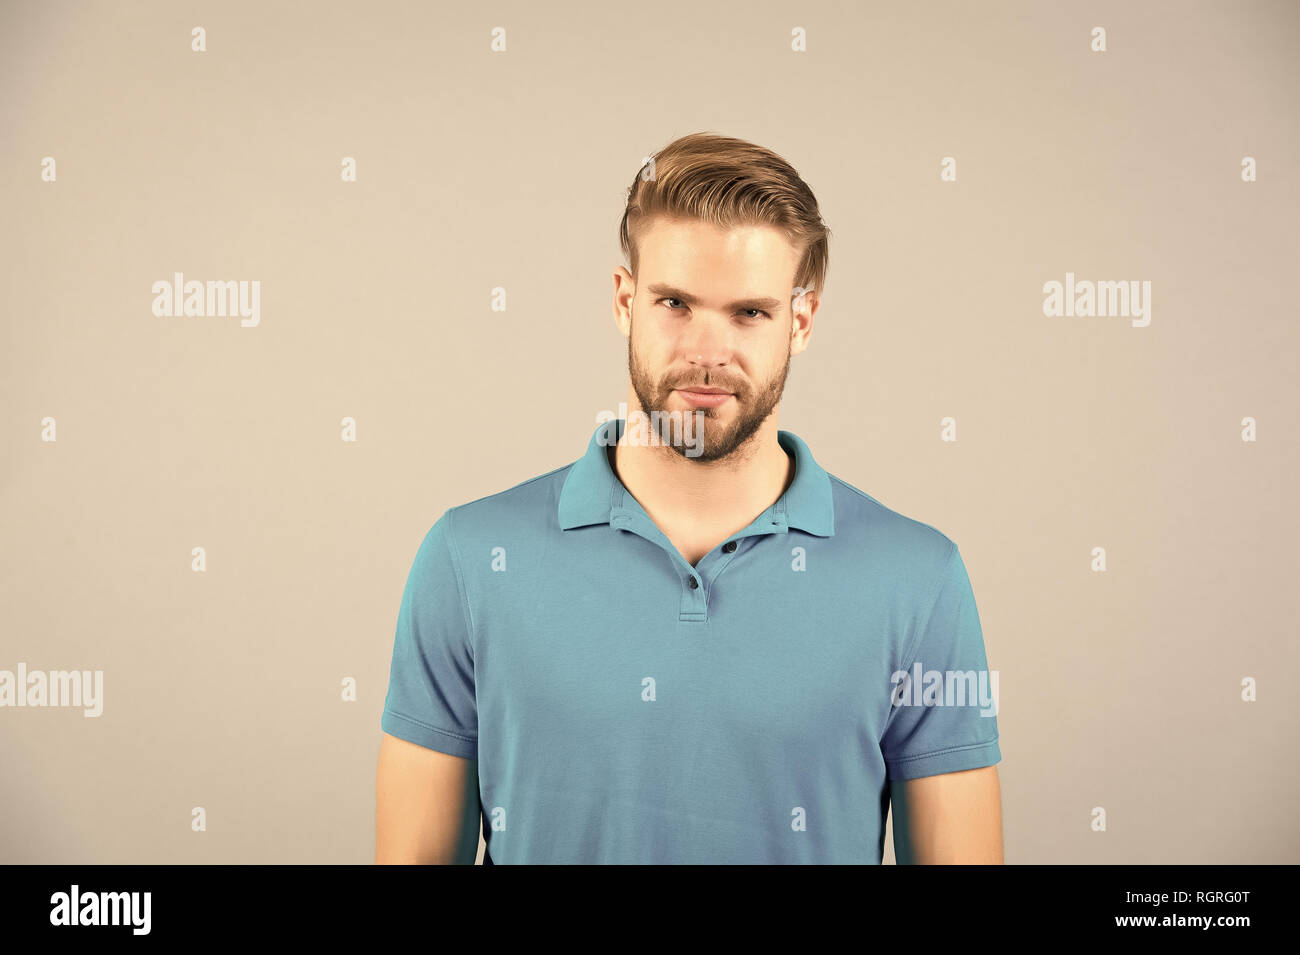 Mens beauty, fashion and style. Man in blue tshirt on grey background. Guy with bearded unshaven face. Macho with blond hair and stylish haircut. Hair care in salon or barbershop. - Stock Image